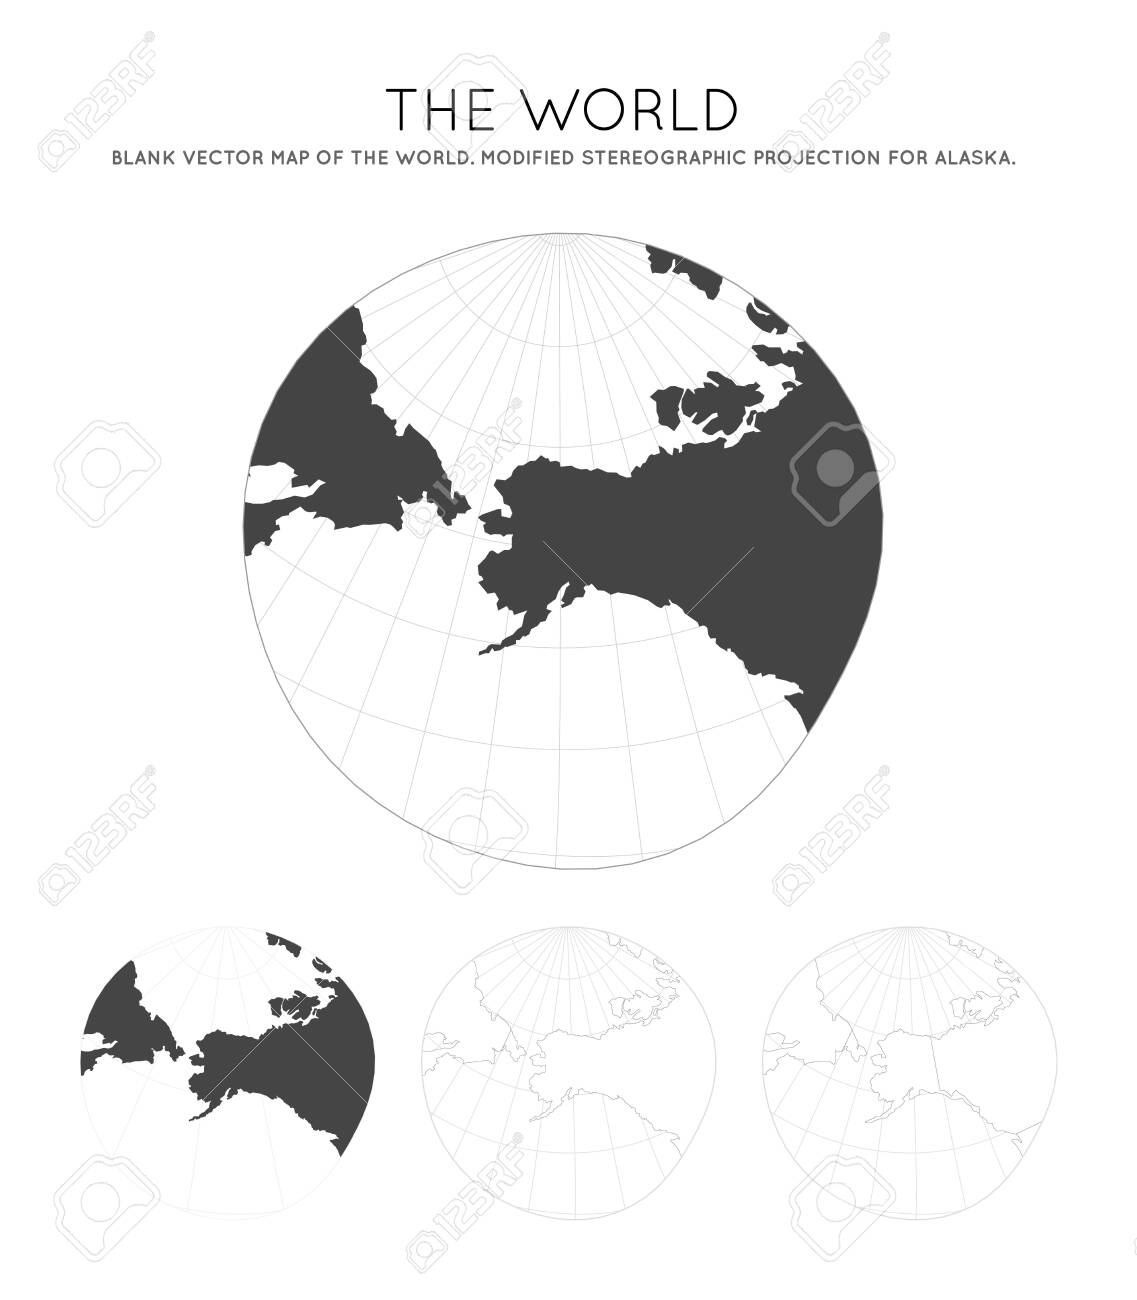 Map Of The World Modified Stereographic Projection For Alaska Royalty Free Cliparts Vectors And Stock Illustration Image 128425571